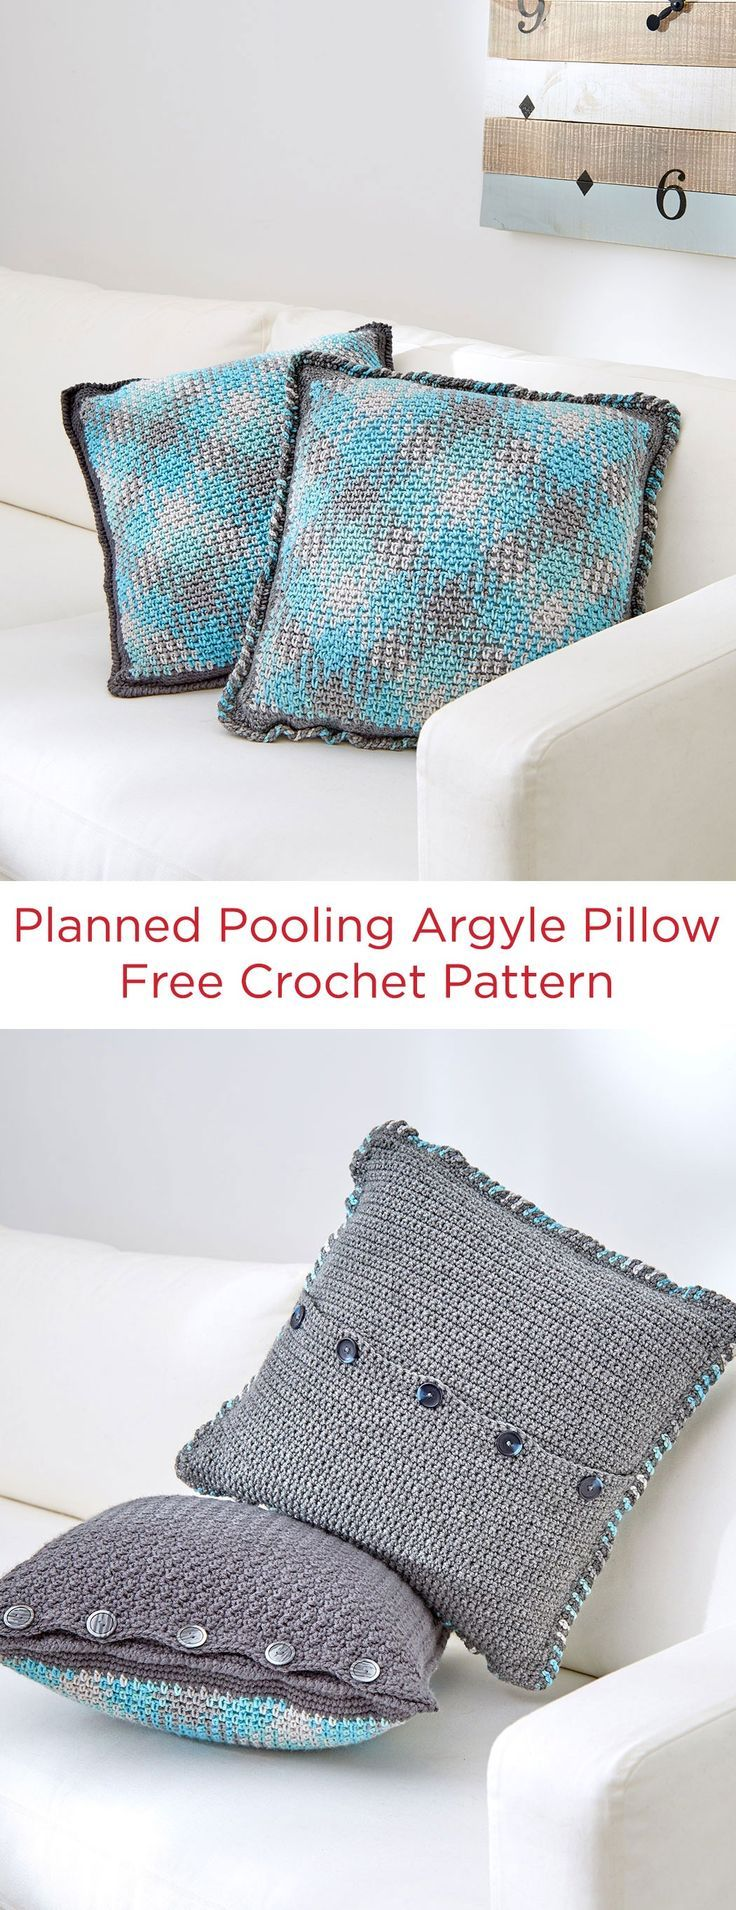 Planned Pooling Argyle Pillow Free Crochet Pattern in Red Heart ...